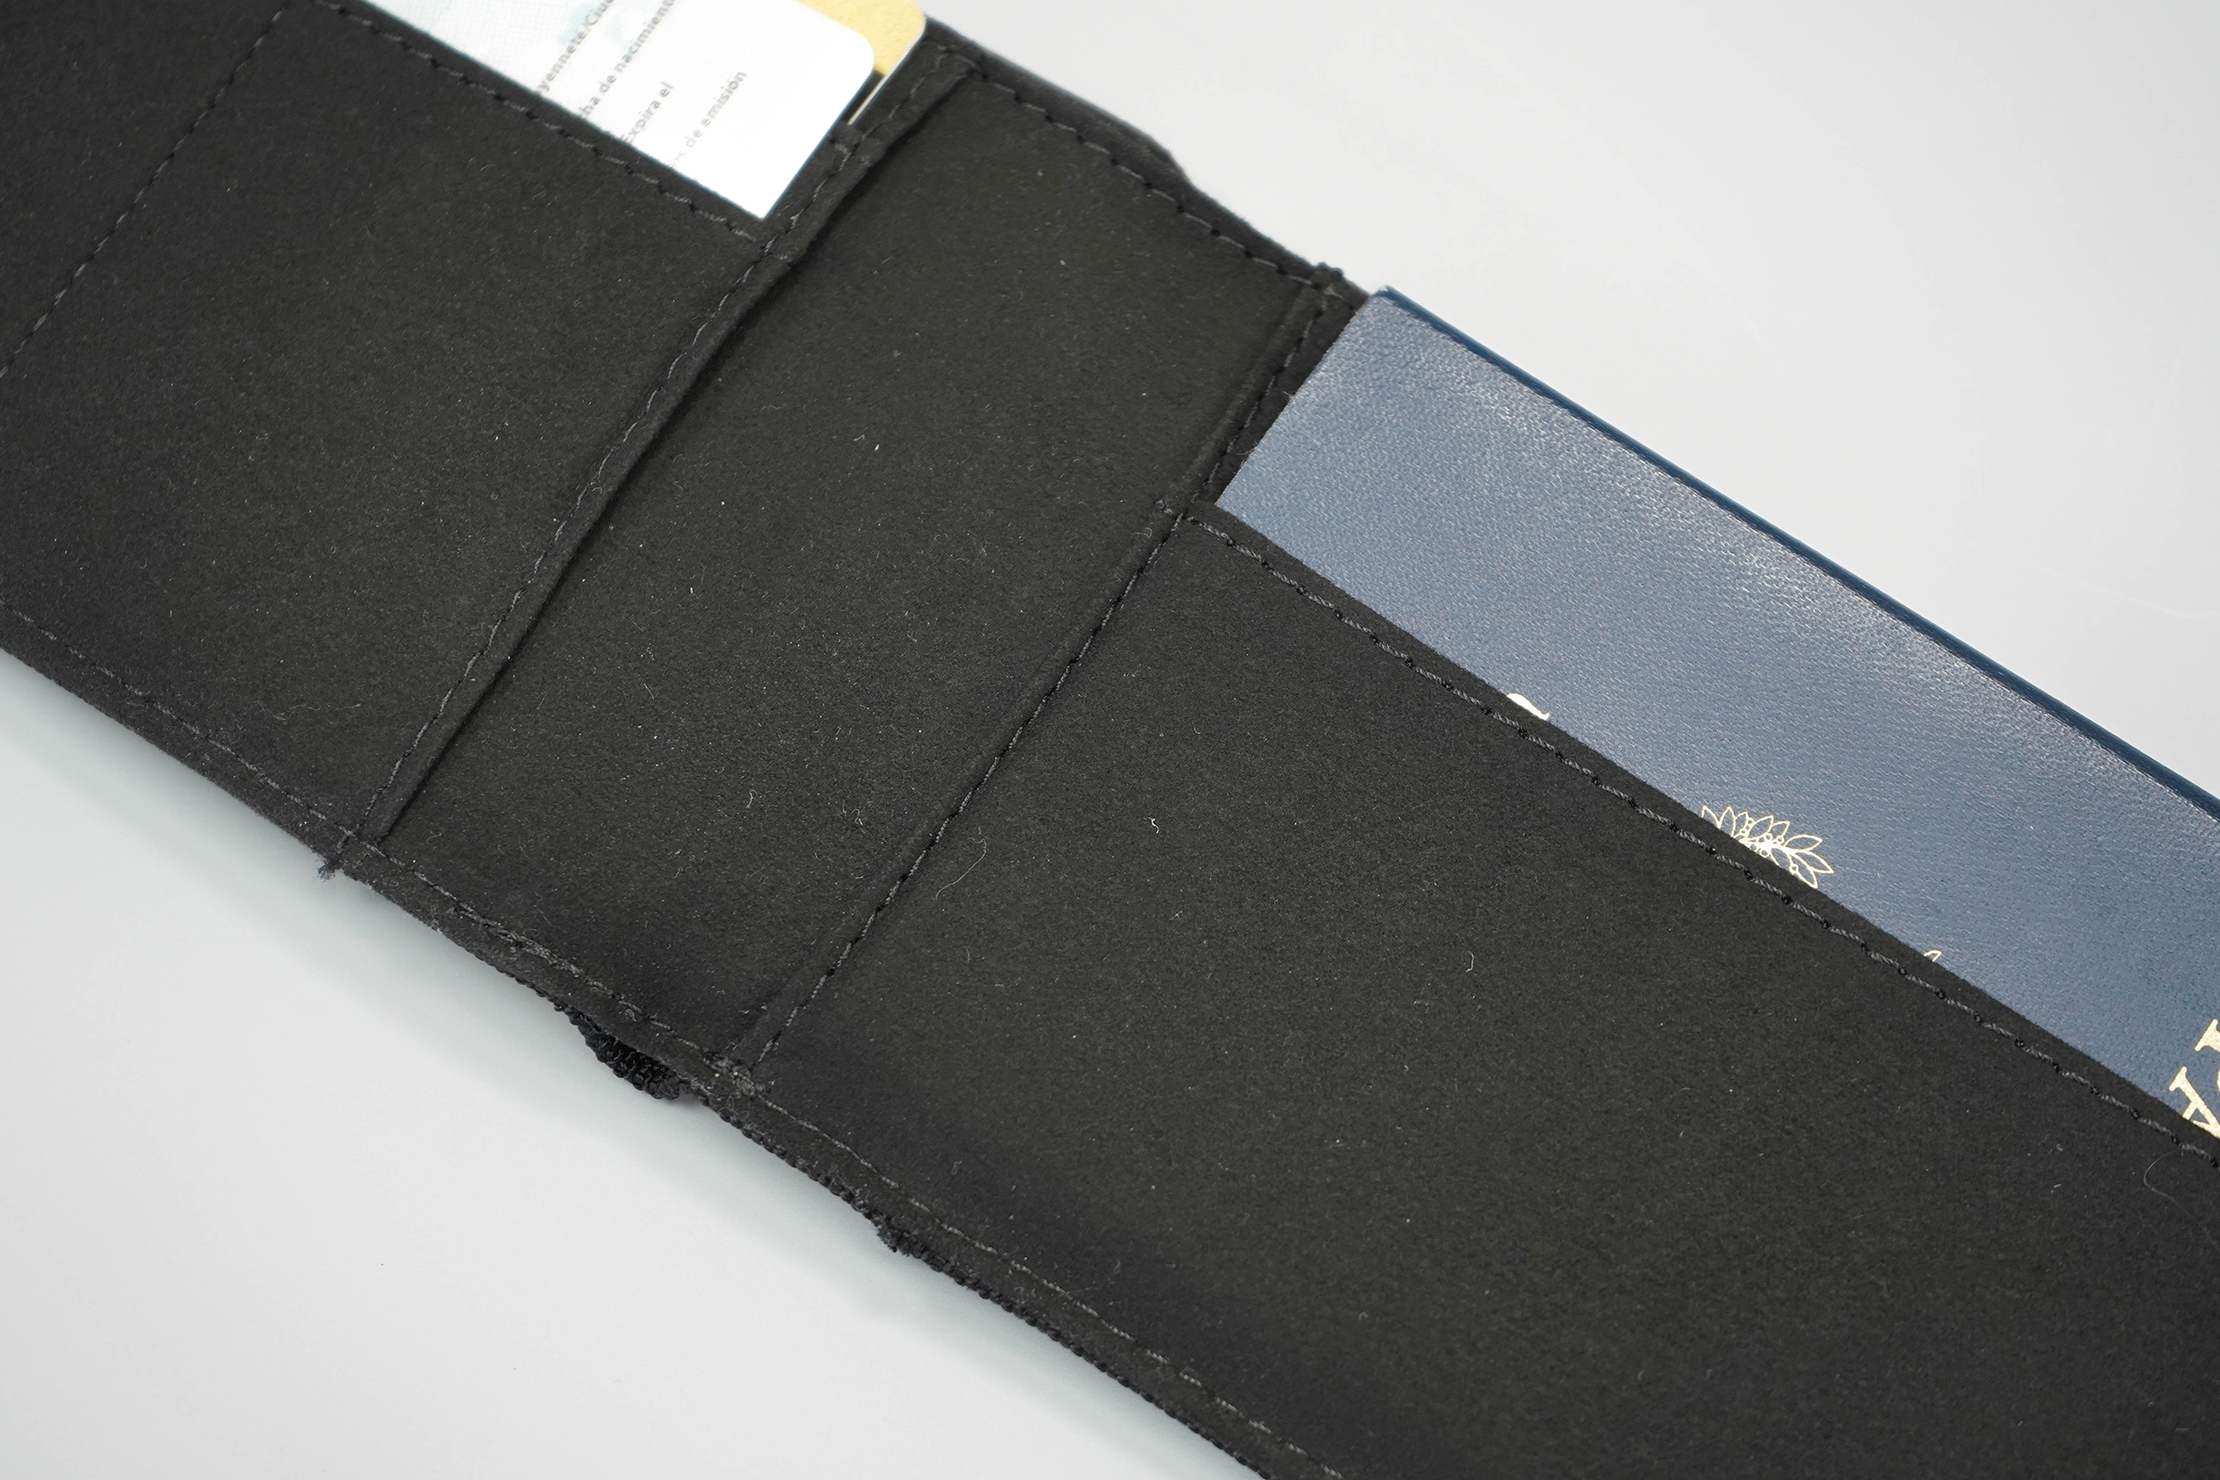 Aer Travel Wallet Inside Material